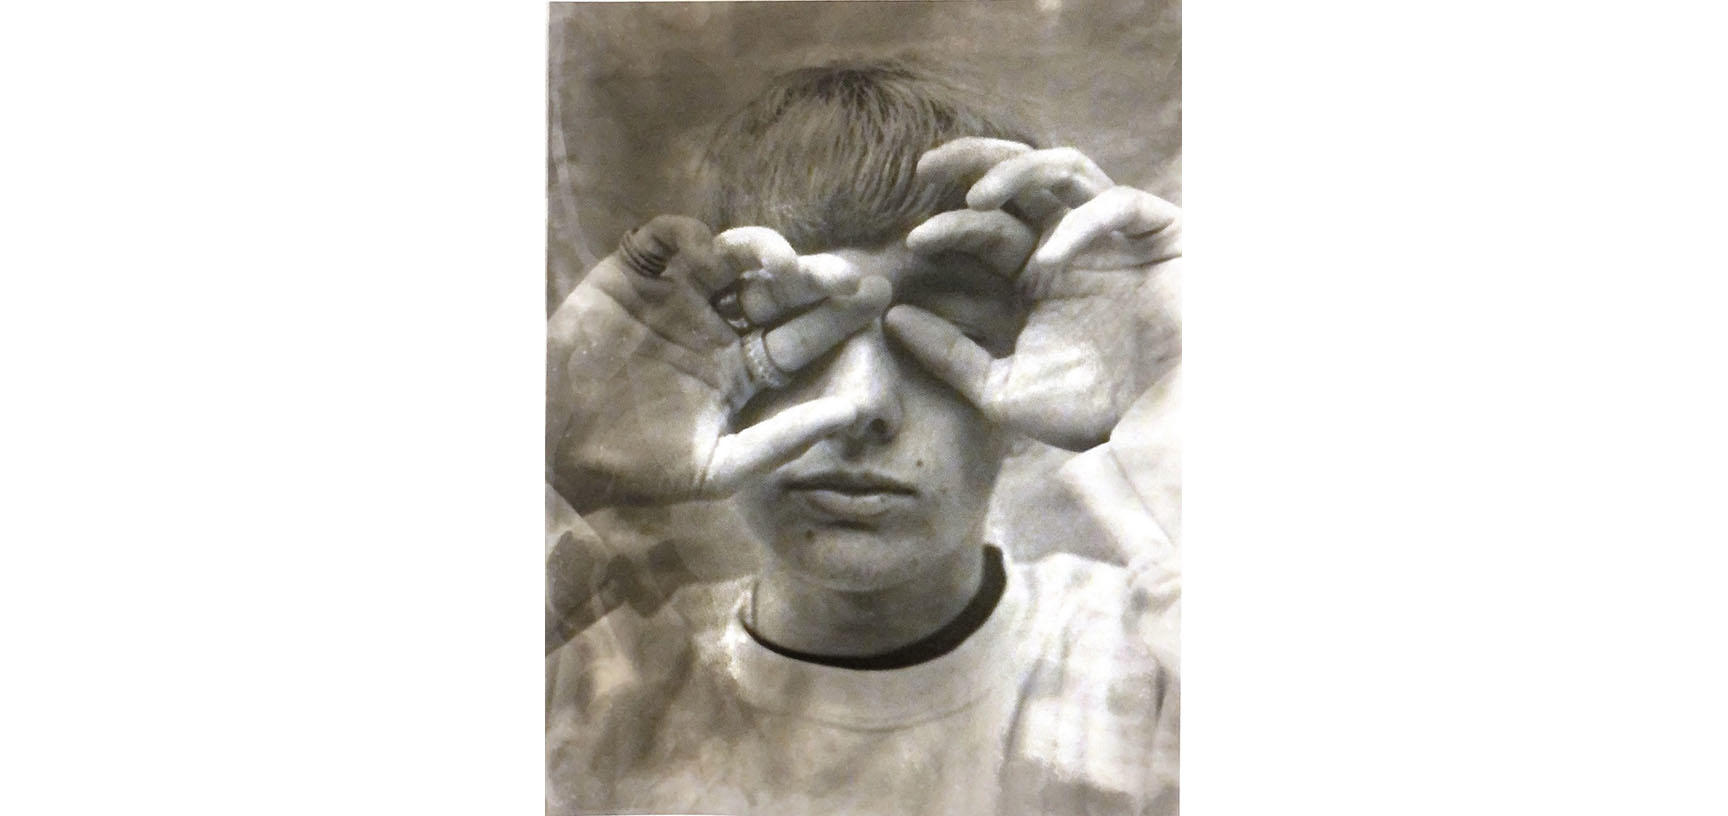 A sepia image of a person. Their head faces the camera but their eyes are covered by their hands - one hand covering an eye, the other makes a circle around the other eye